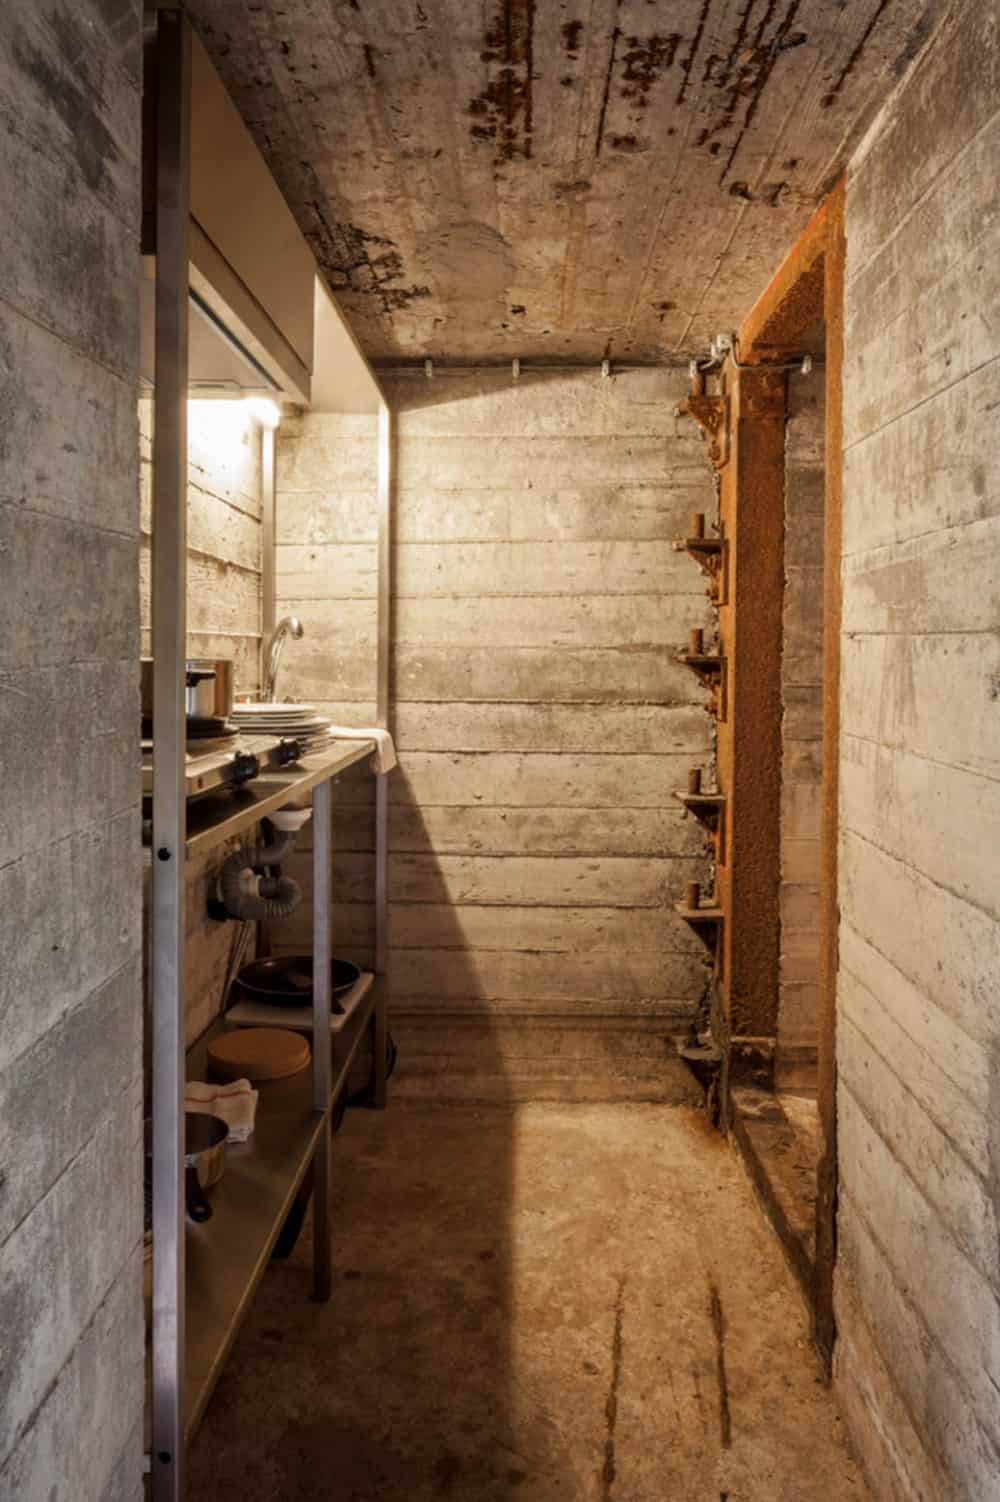 Tiny War Bunker Makes Unique Underground Home